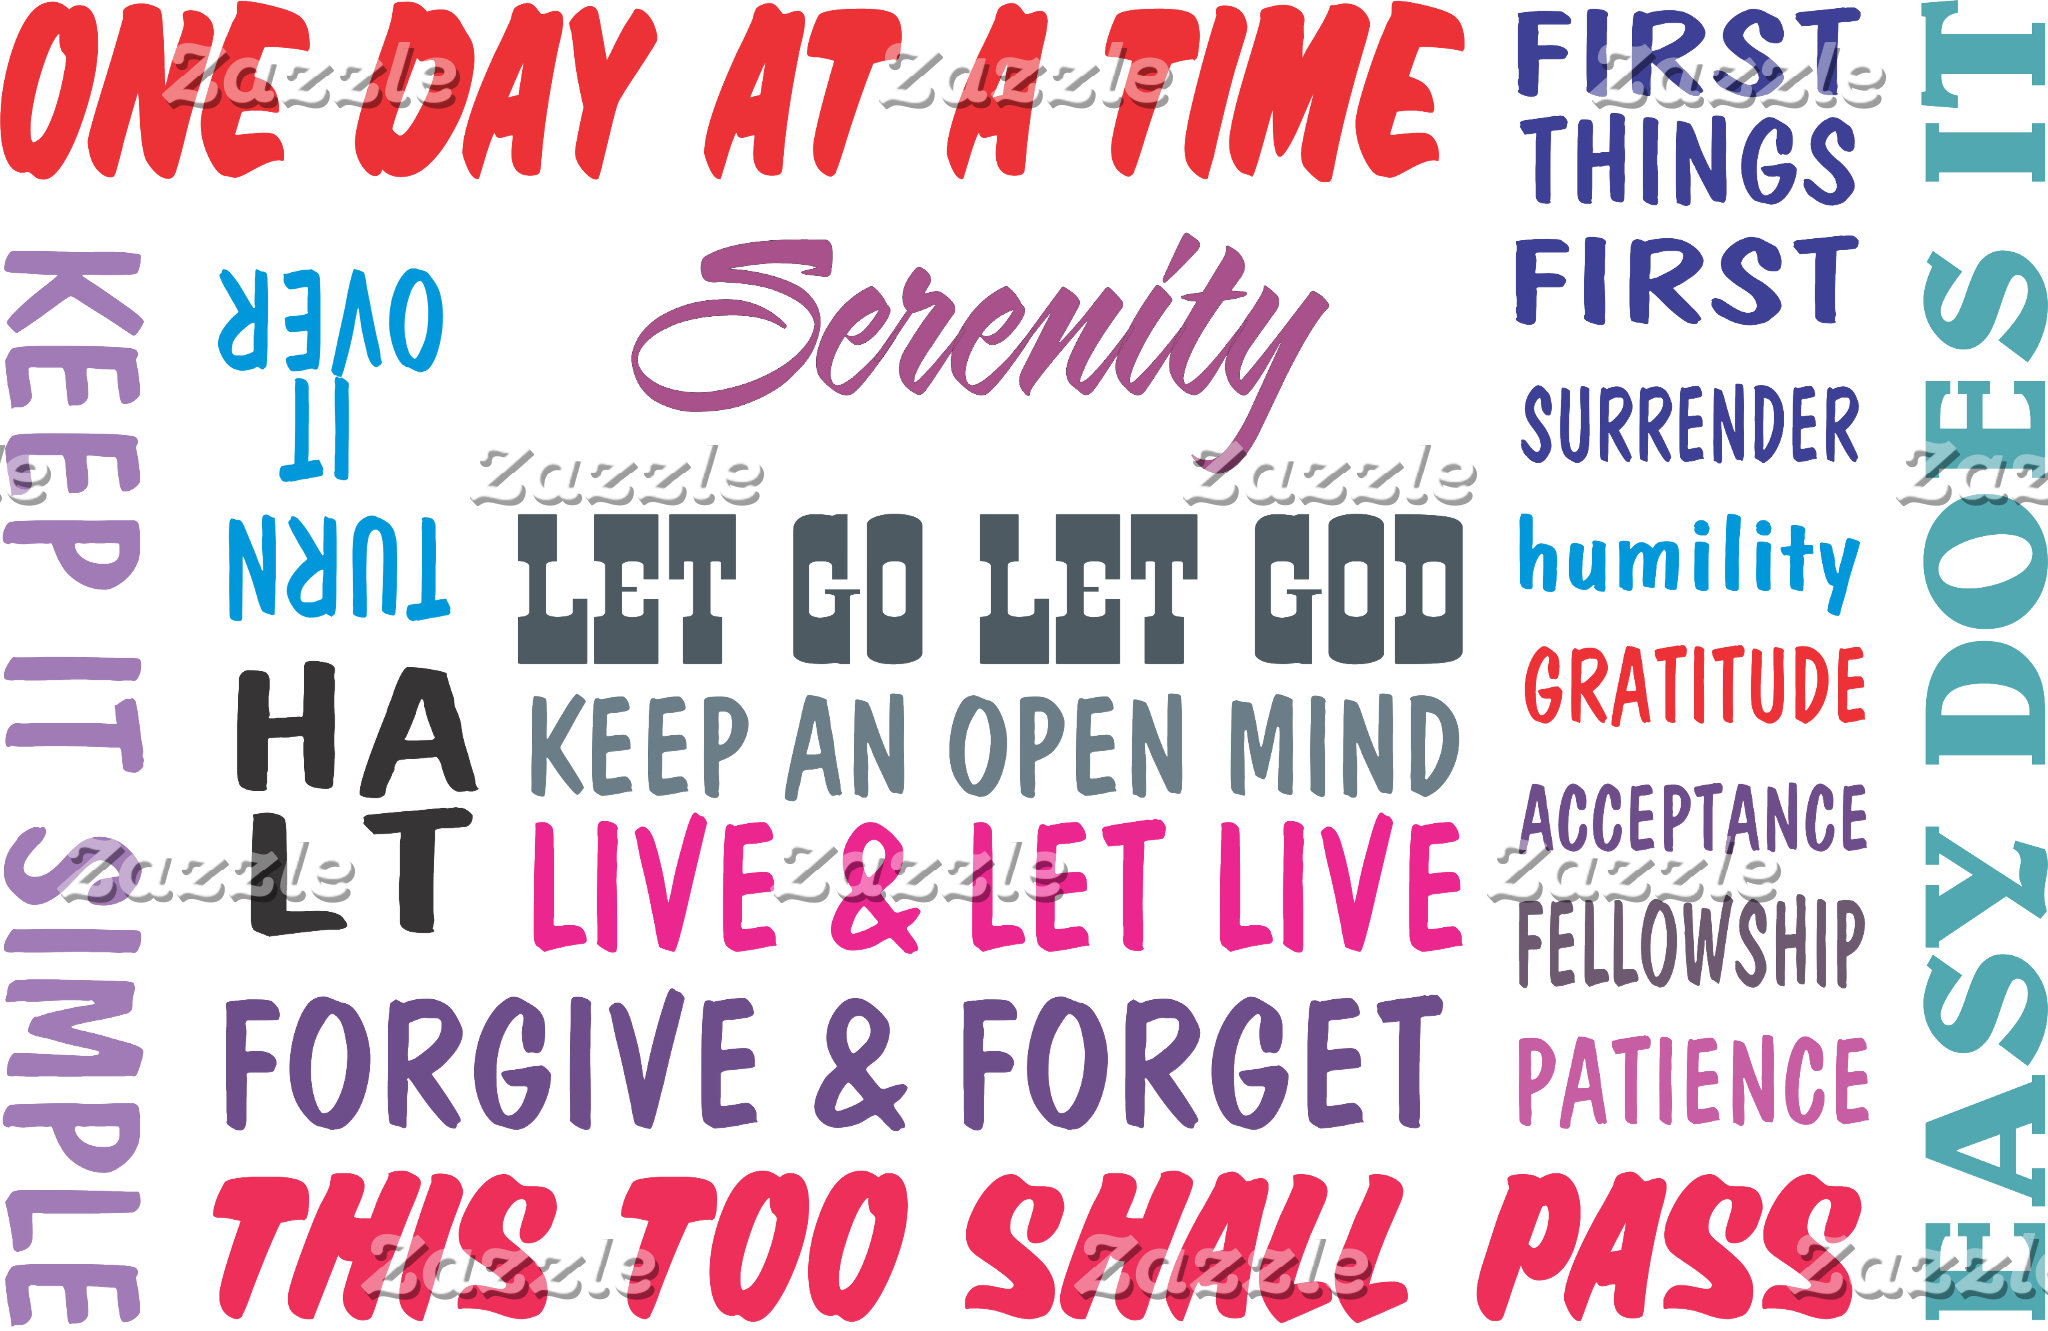 12 step recovery slogans